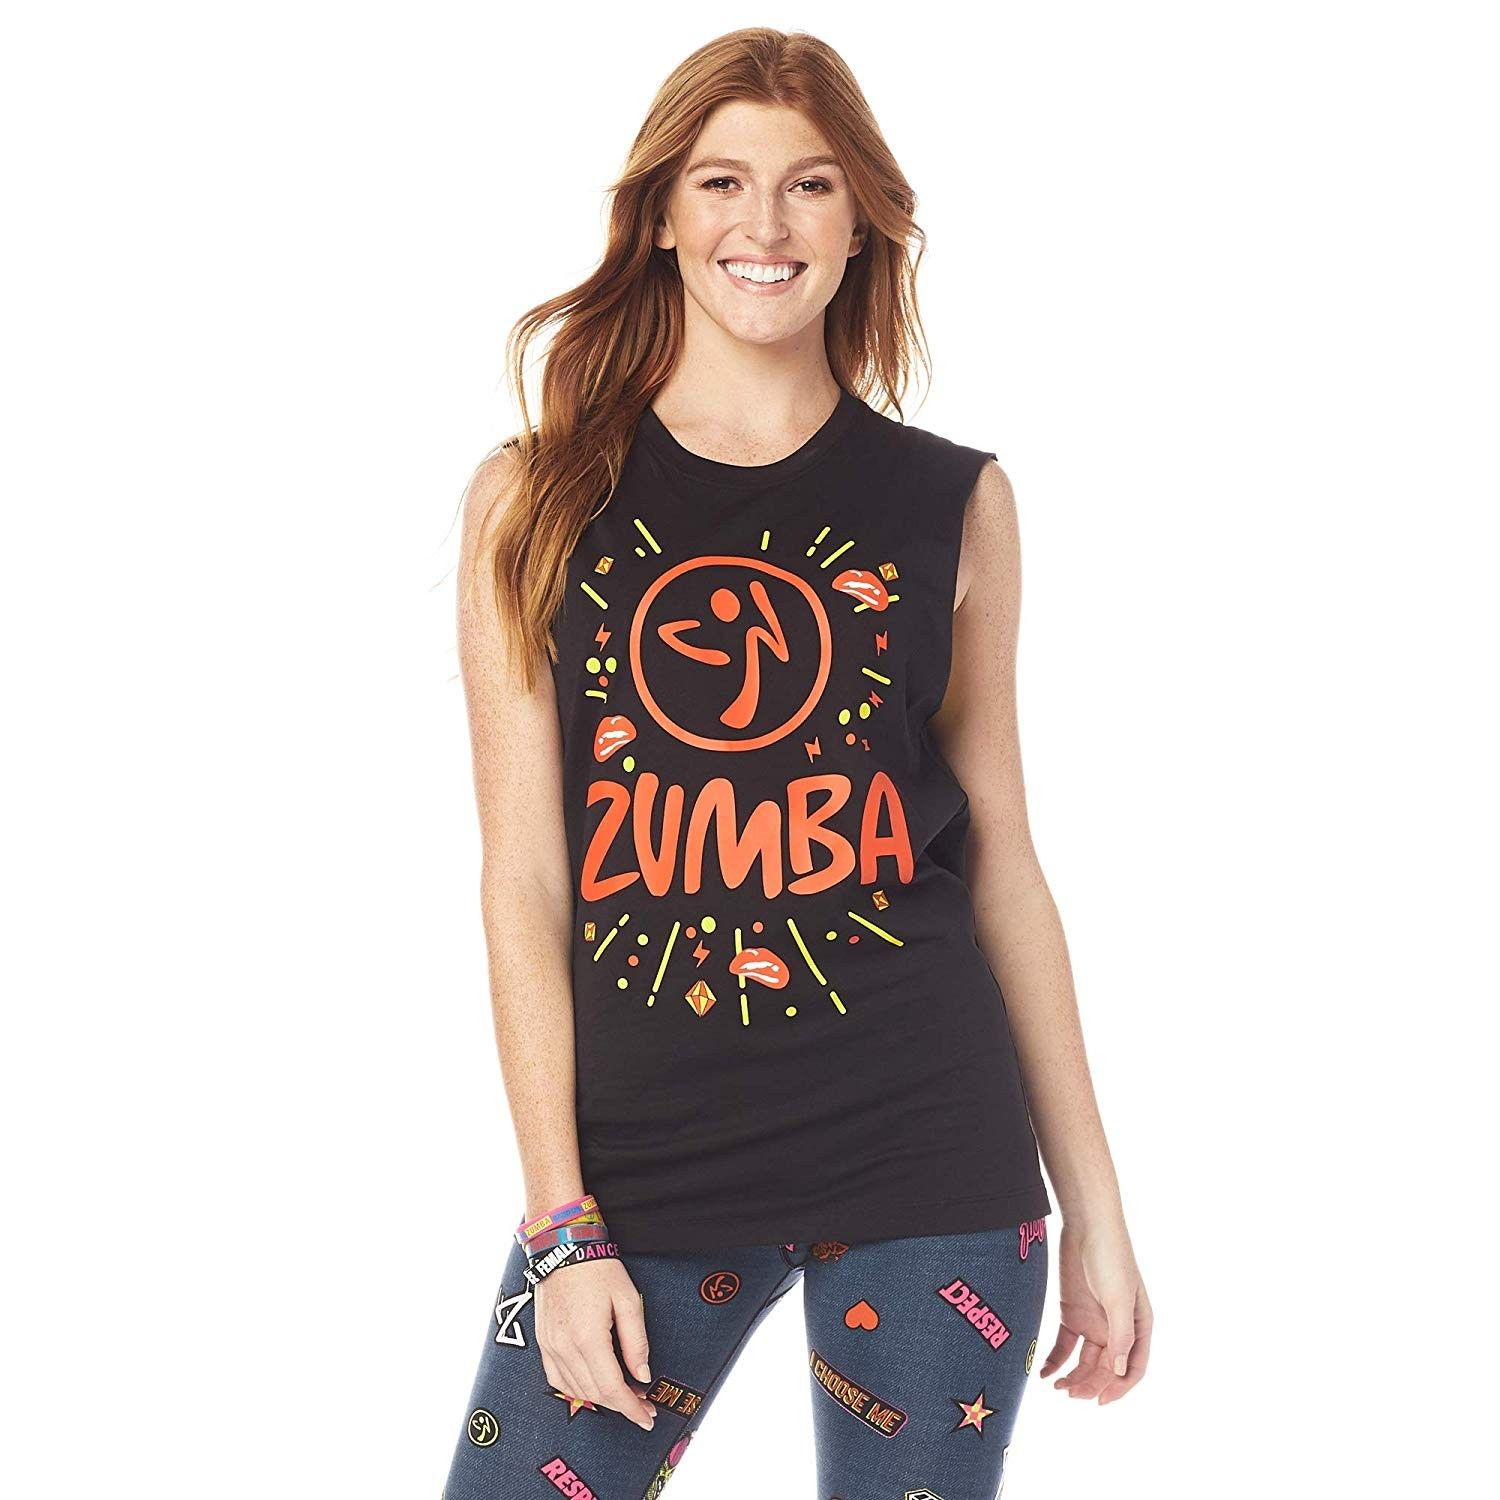 Zumba Fitness Unisex Top Unisex Workout Tank Top with Fashion Print